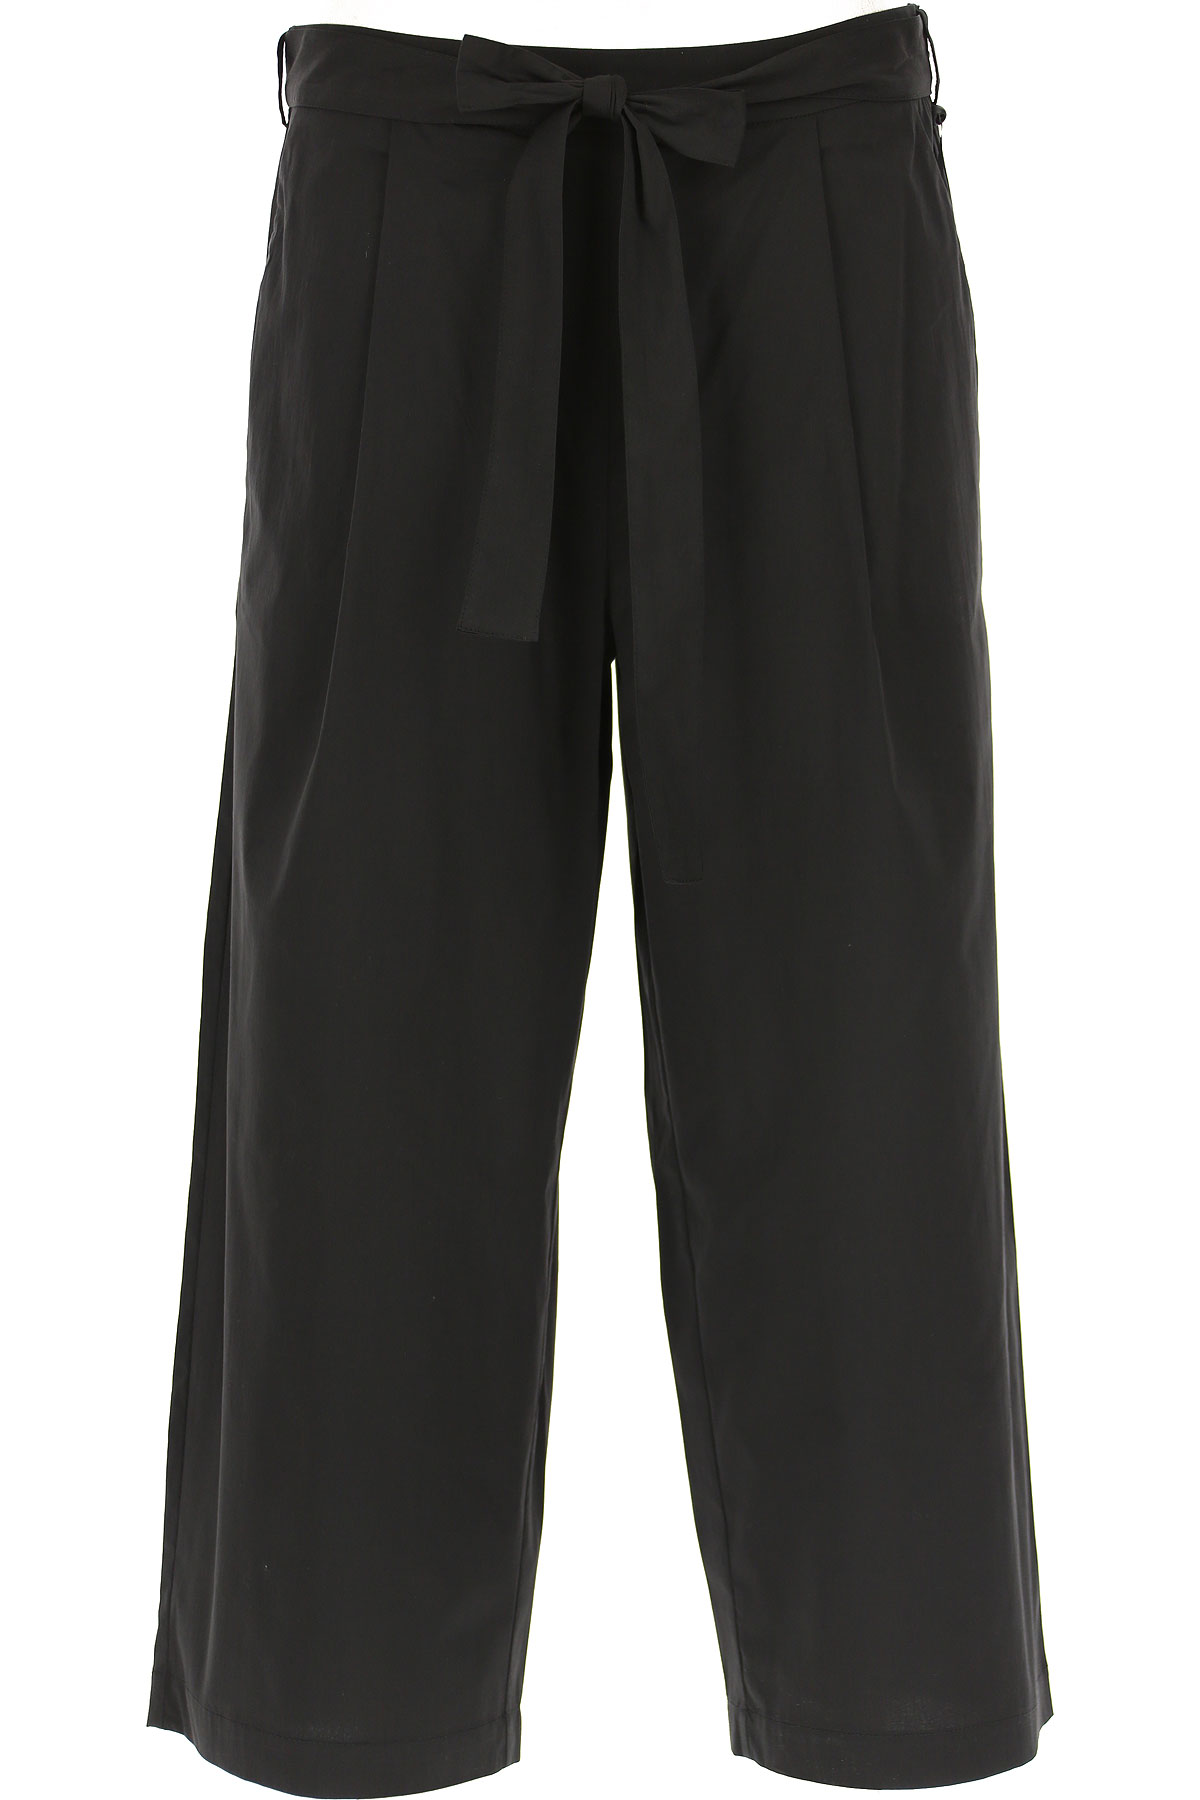 DKNY Pants for Women On Sale, Black, Cotton, 2019, 2 4 6